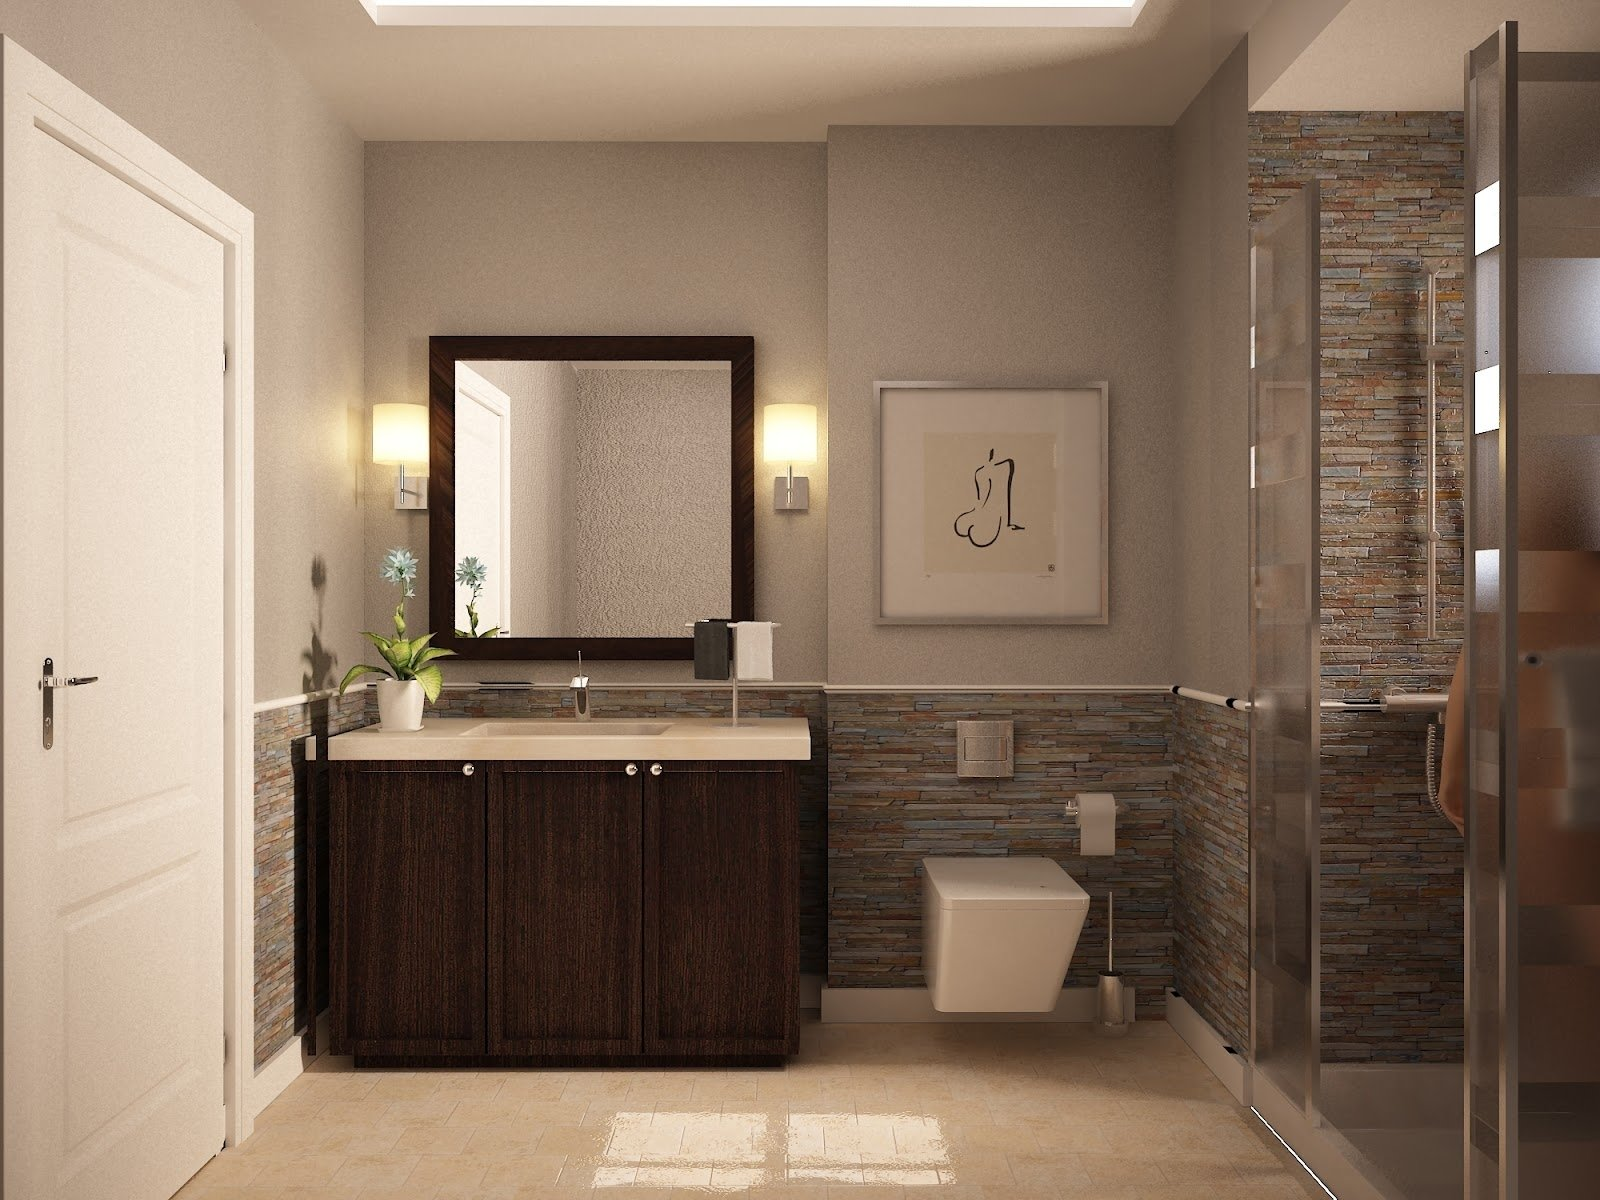 10 Unique Color Ideas For Small Bathrooms best paint color for small bathroom the best advice for color 2020